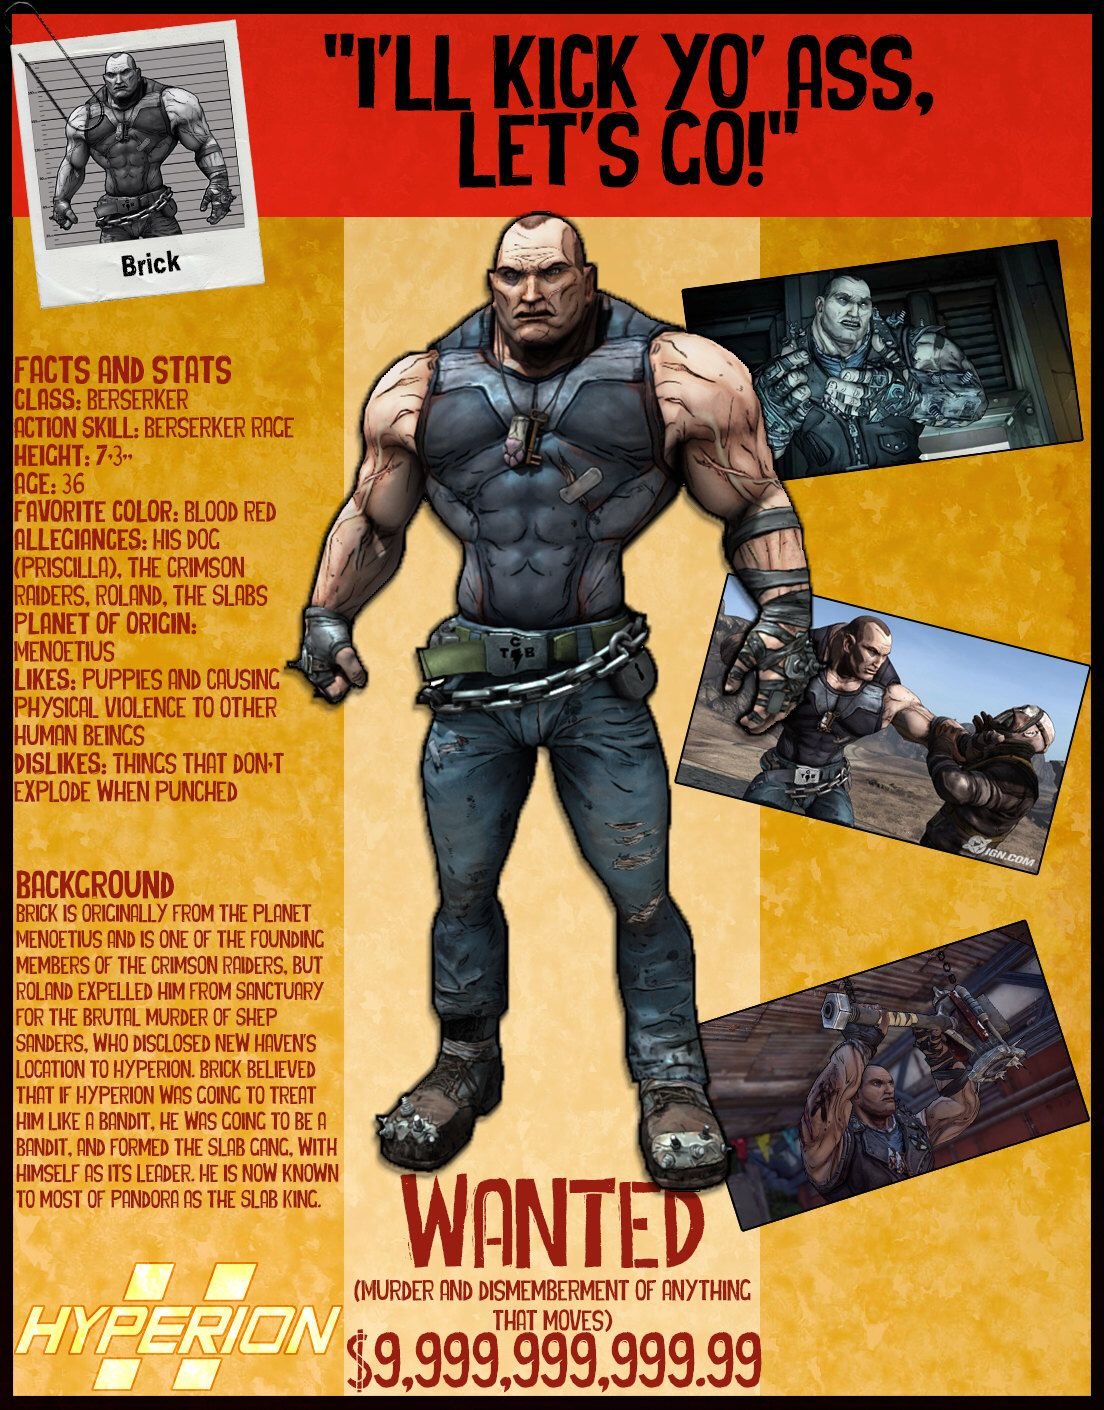 borderlands 2 wanted posters brick by